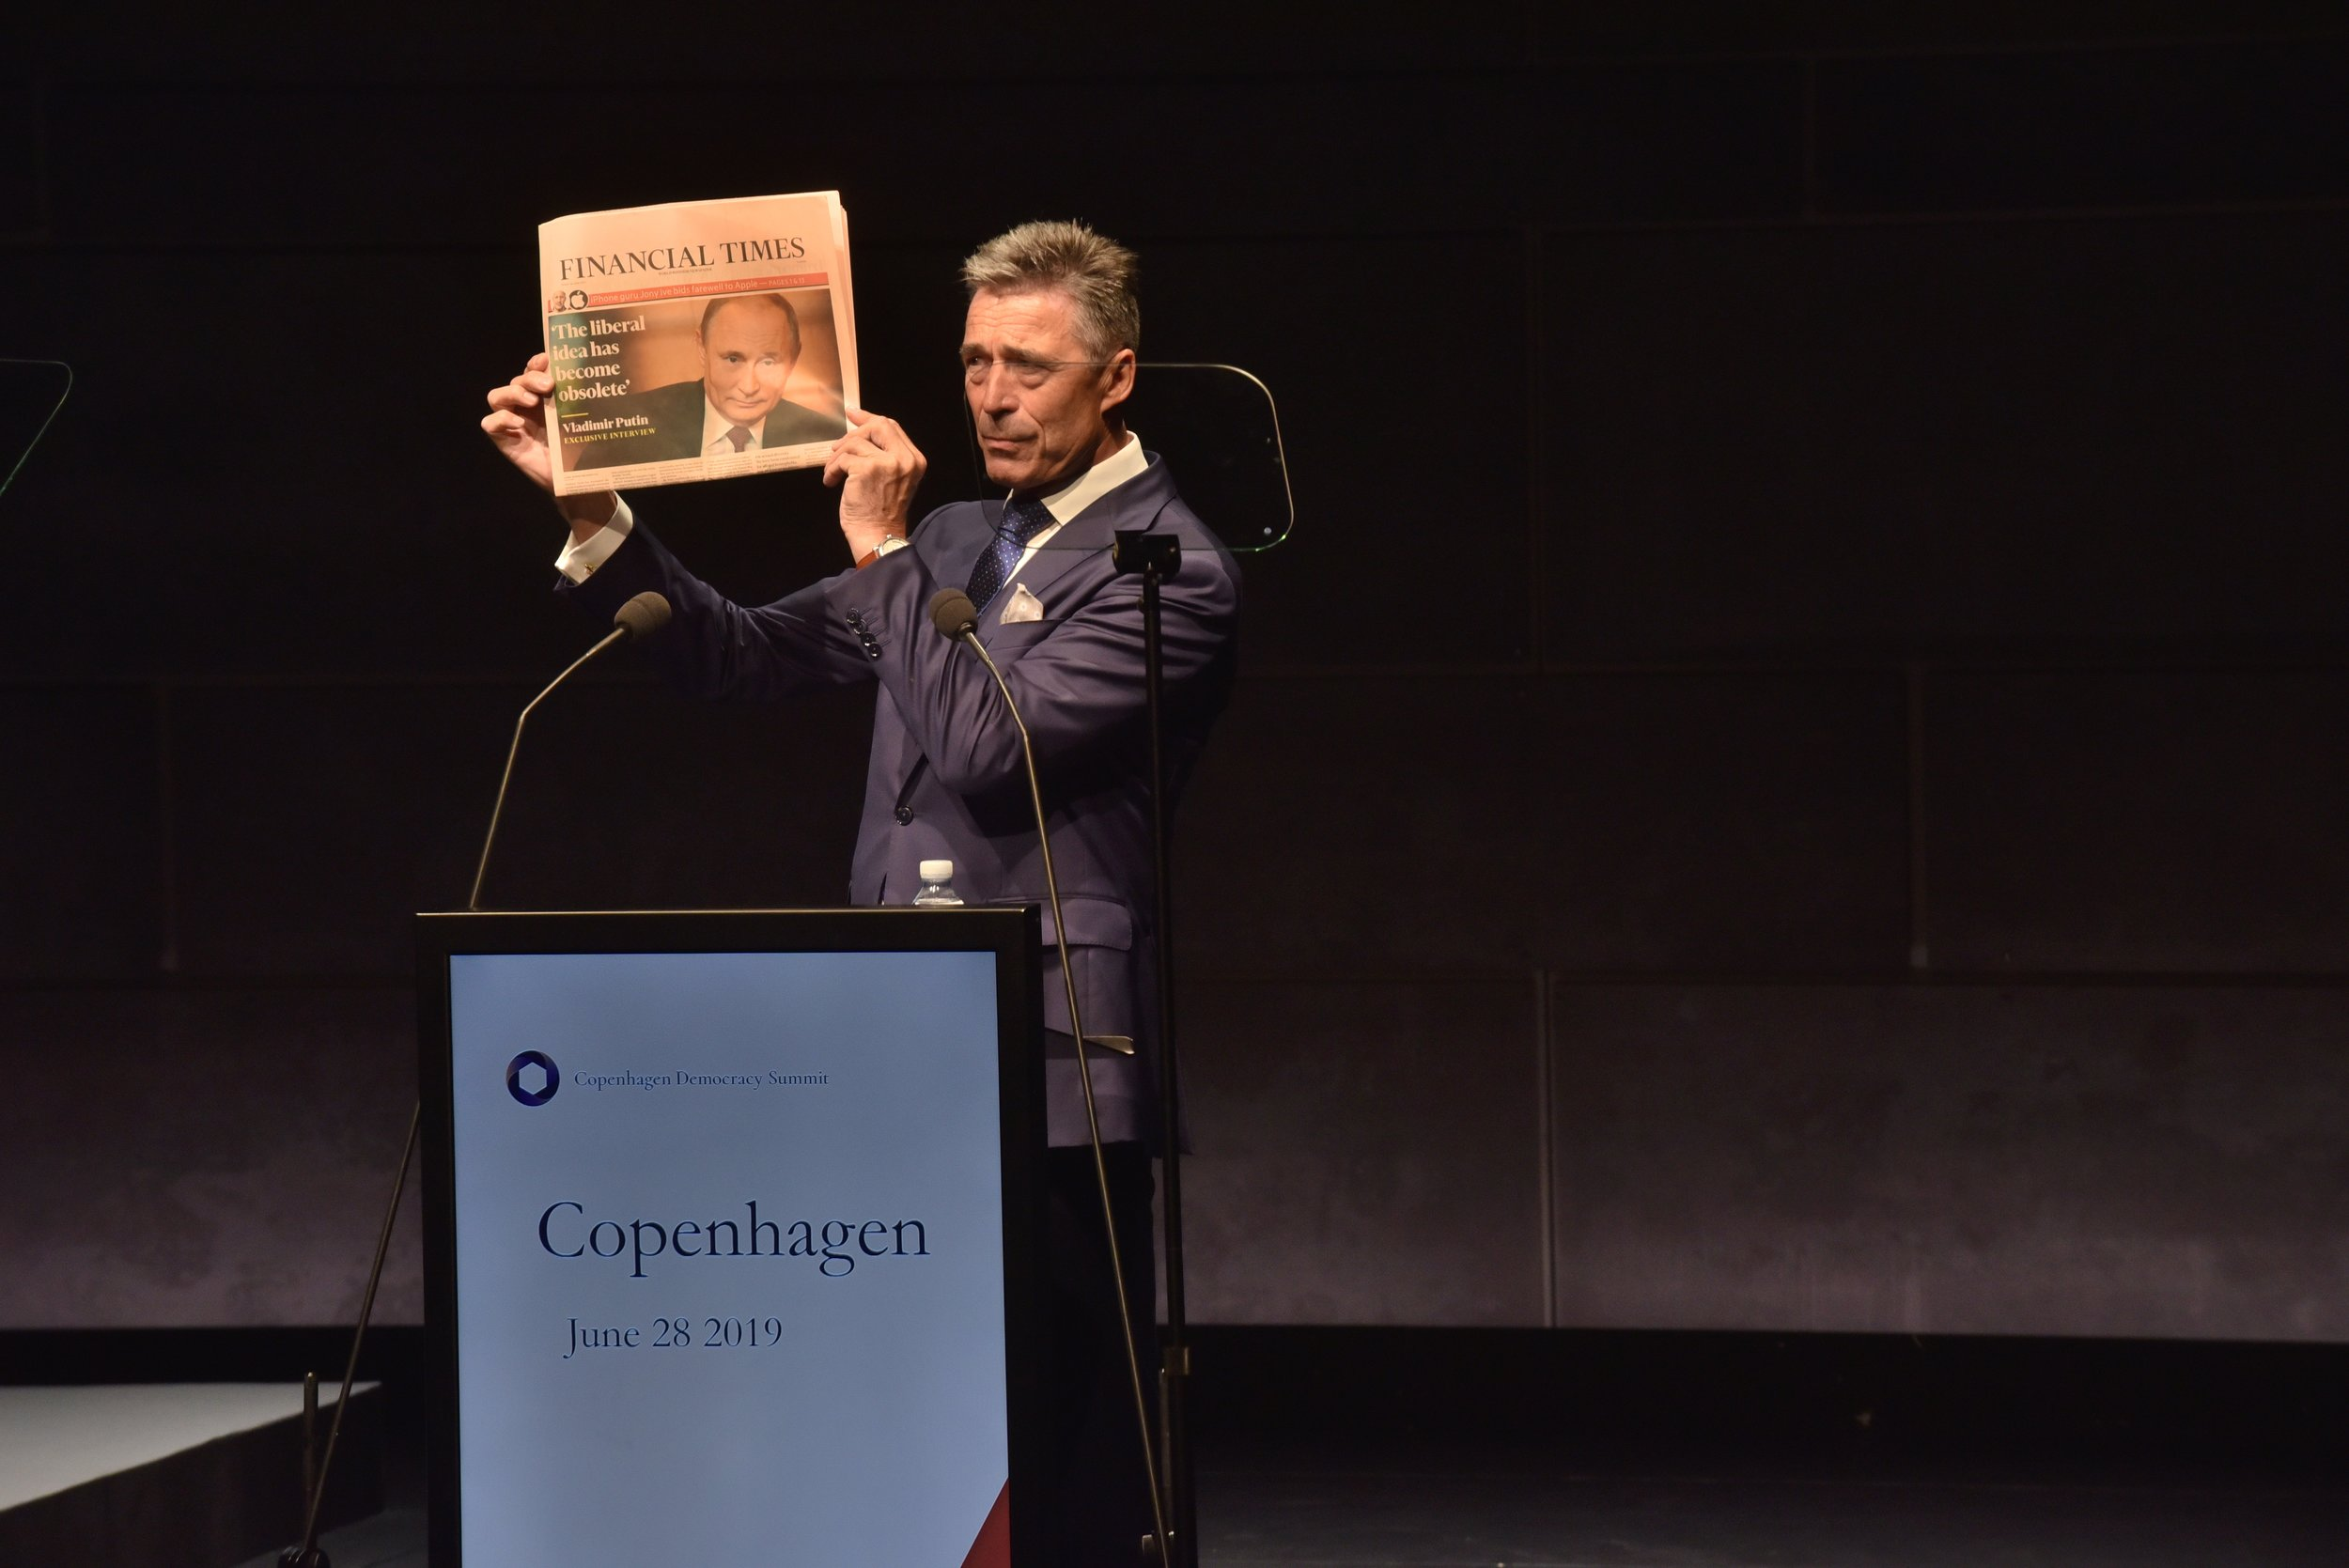 Anders Fogh Rasmussen  holding the  Financial Times , with photo of Vladimir Putin and headline 'The liberal idea has become obsolete'  (Photo courtesy AoD)